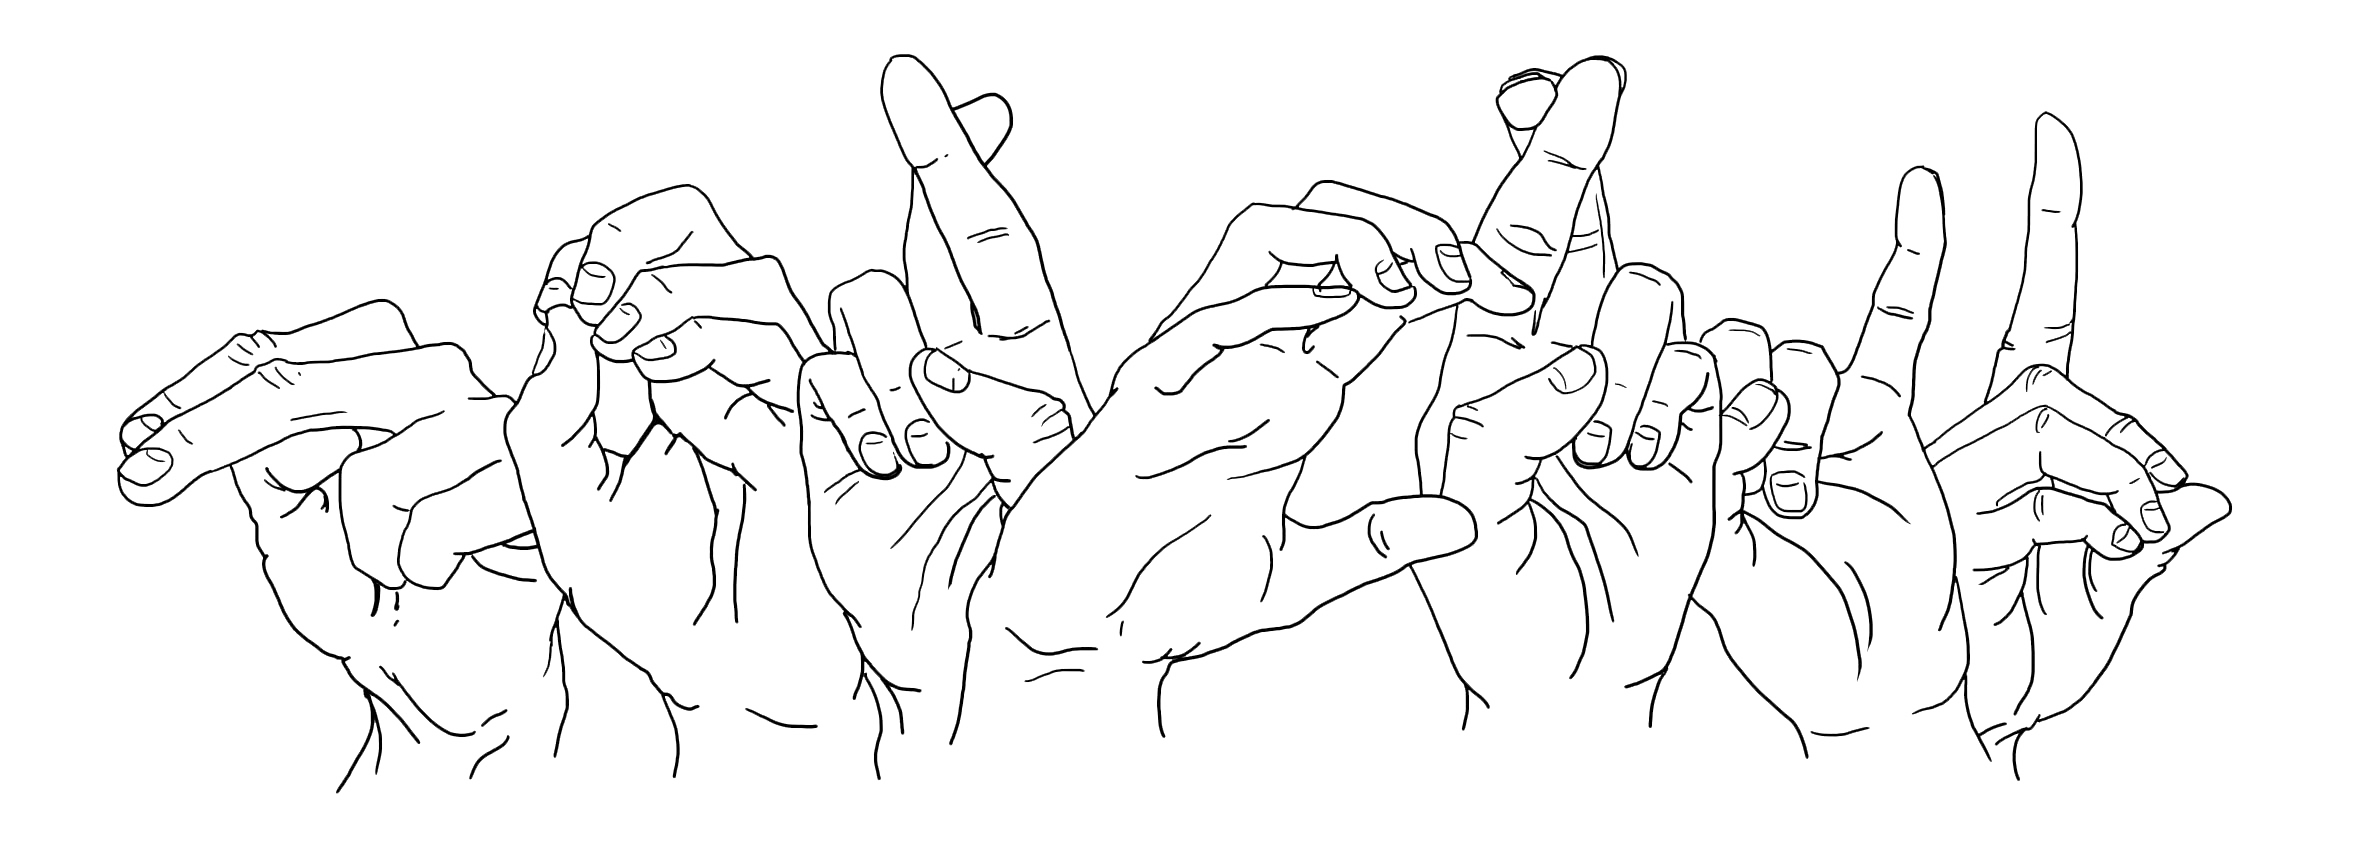 outlined hands fingerspelling norcrid- image created by Carmen Olson